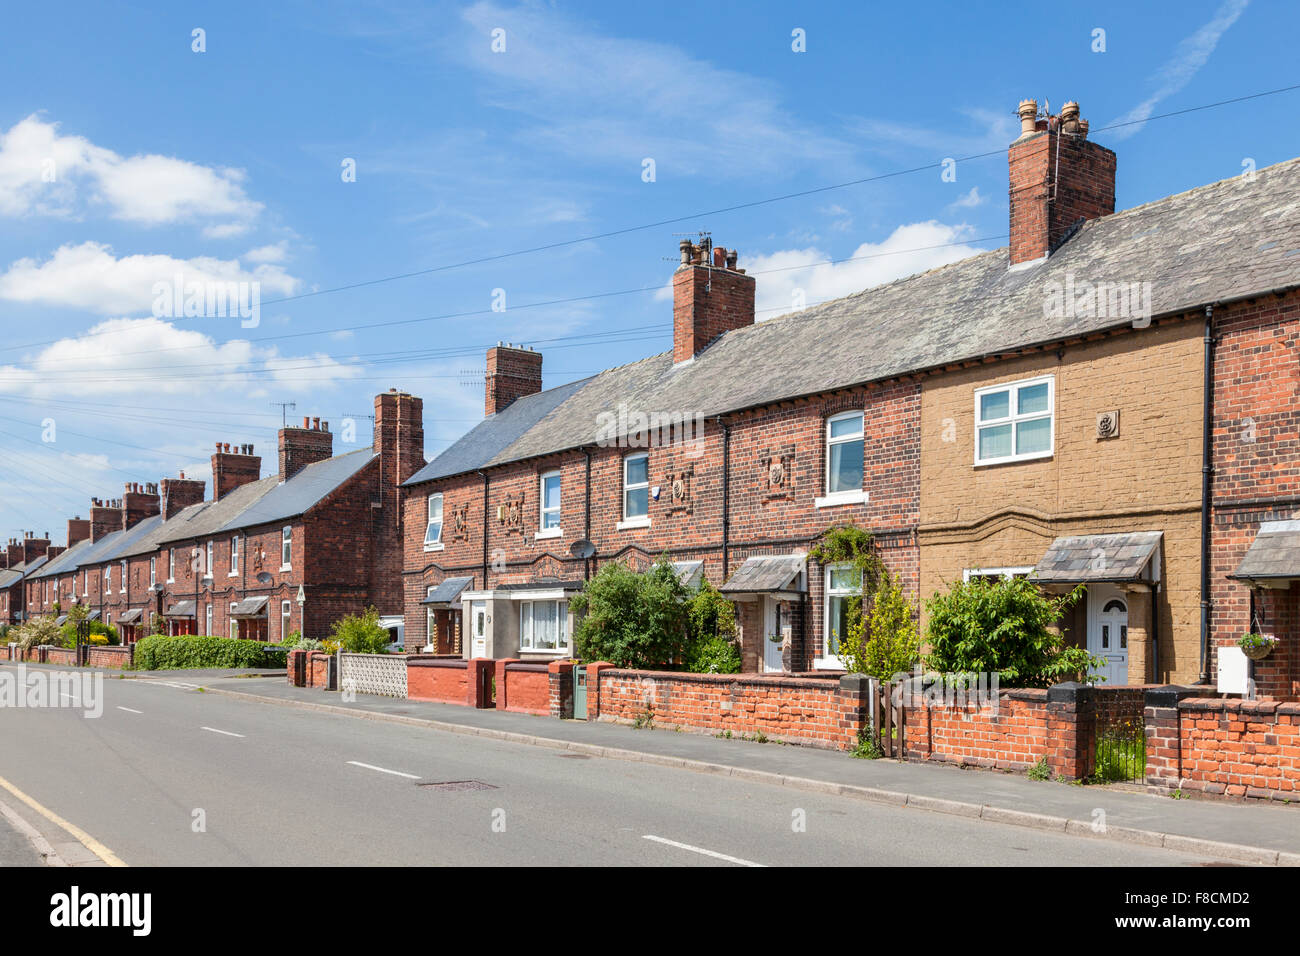 Row of terraced housing for colliery workers on a street at Bestwood Village, Nottinghamshire, England, UK - Stock Image